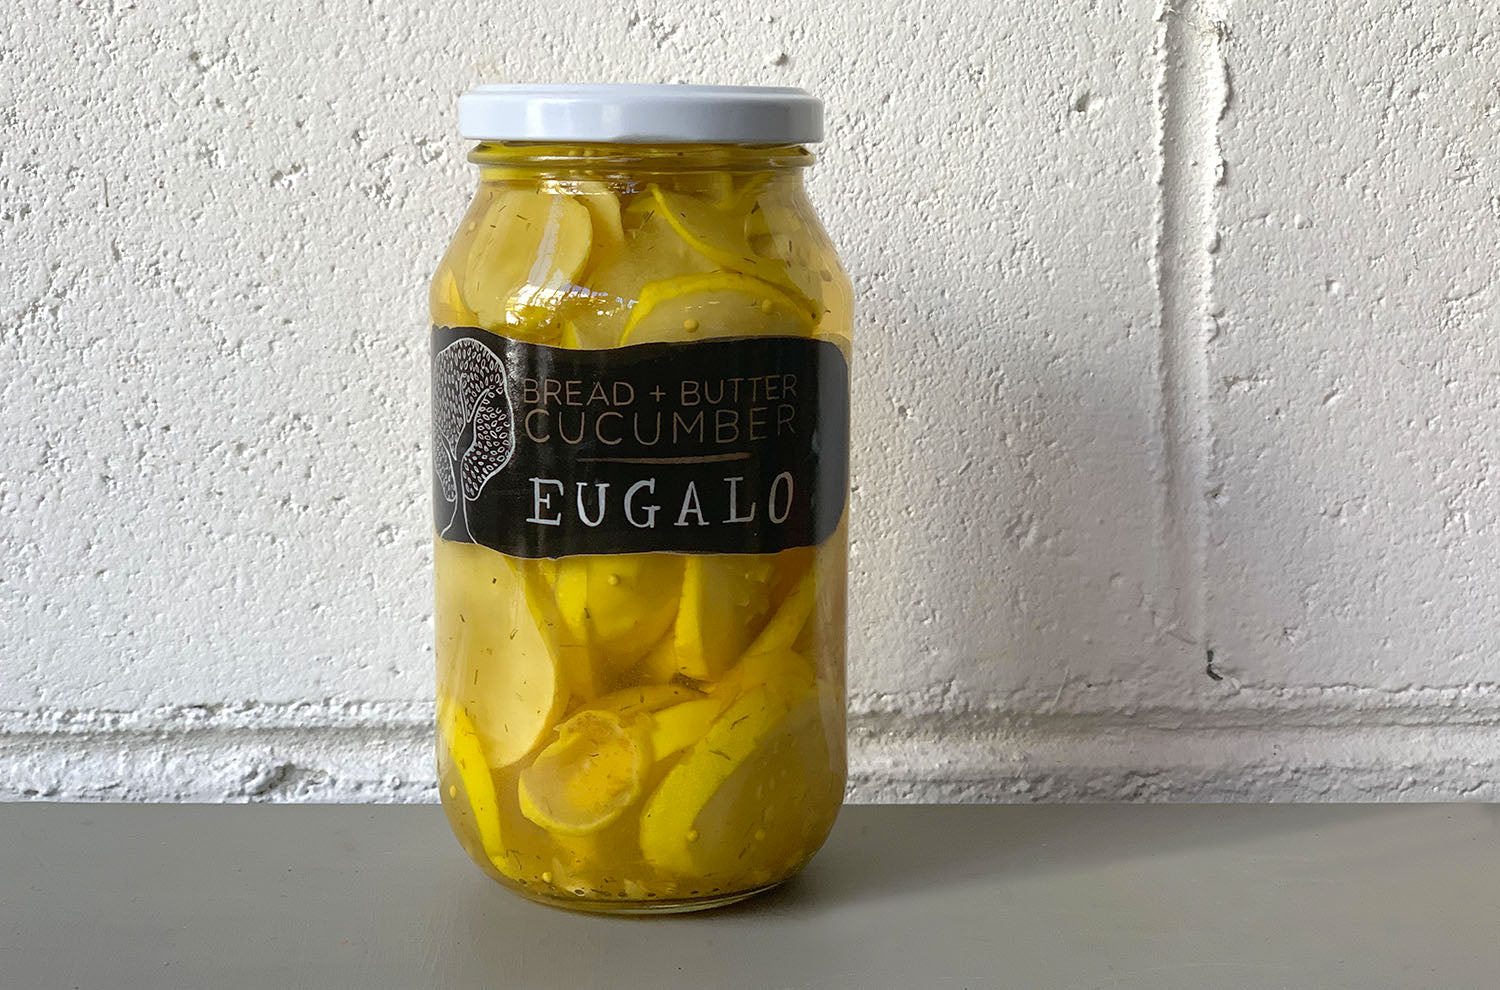 Eugalo Bread and Butter Cucumber